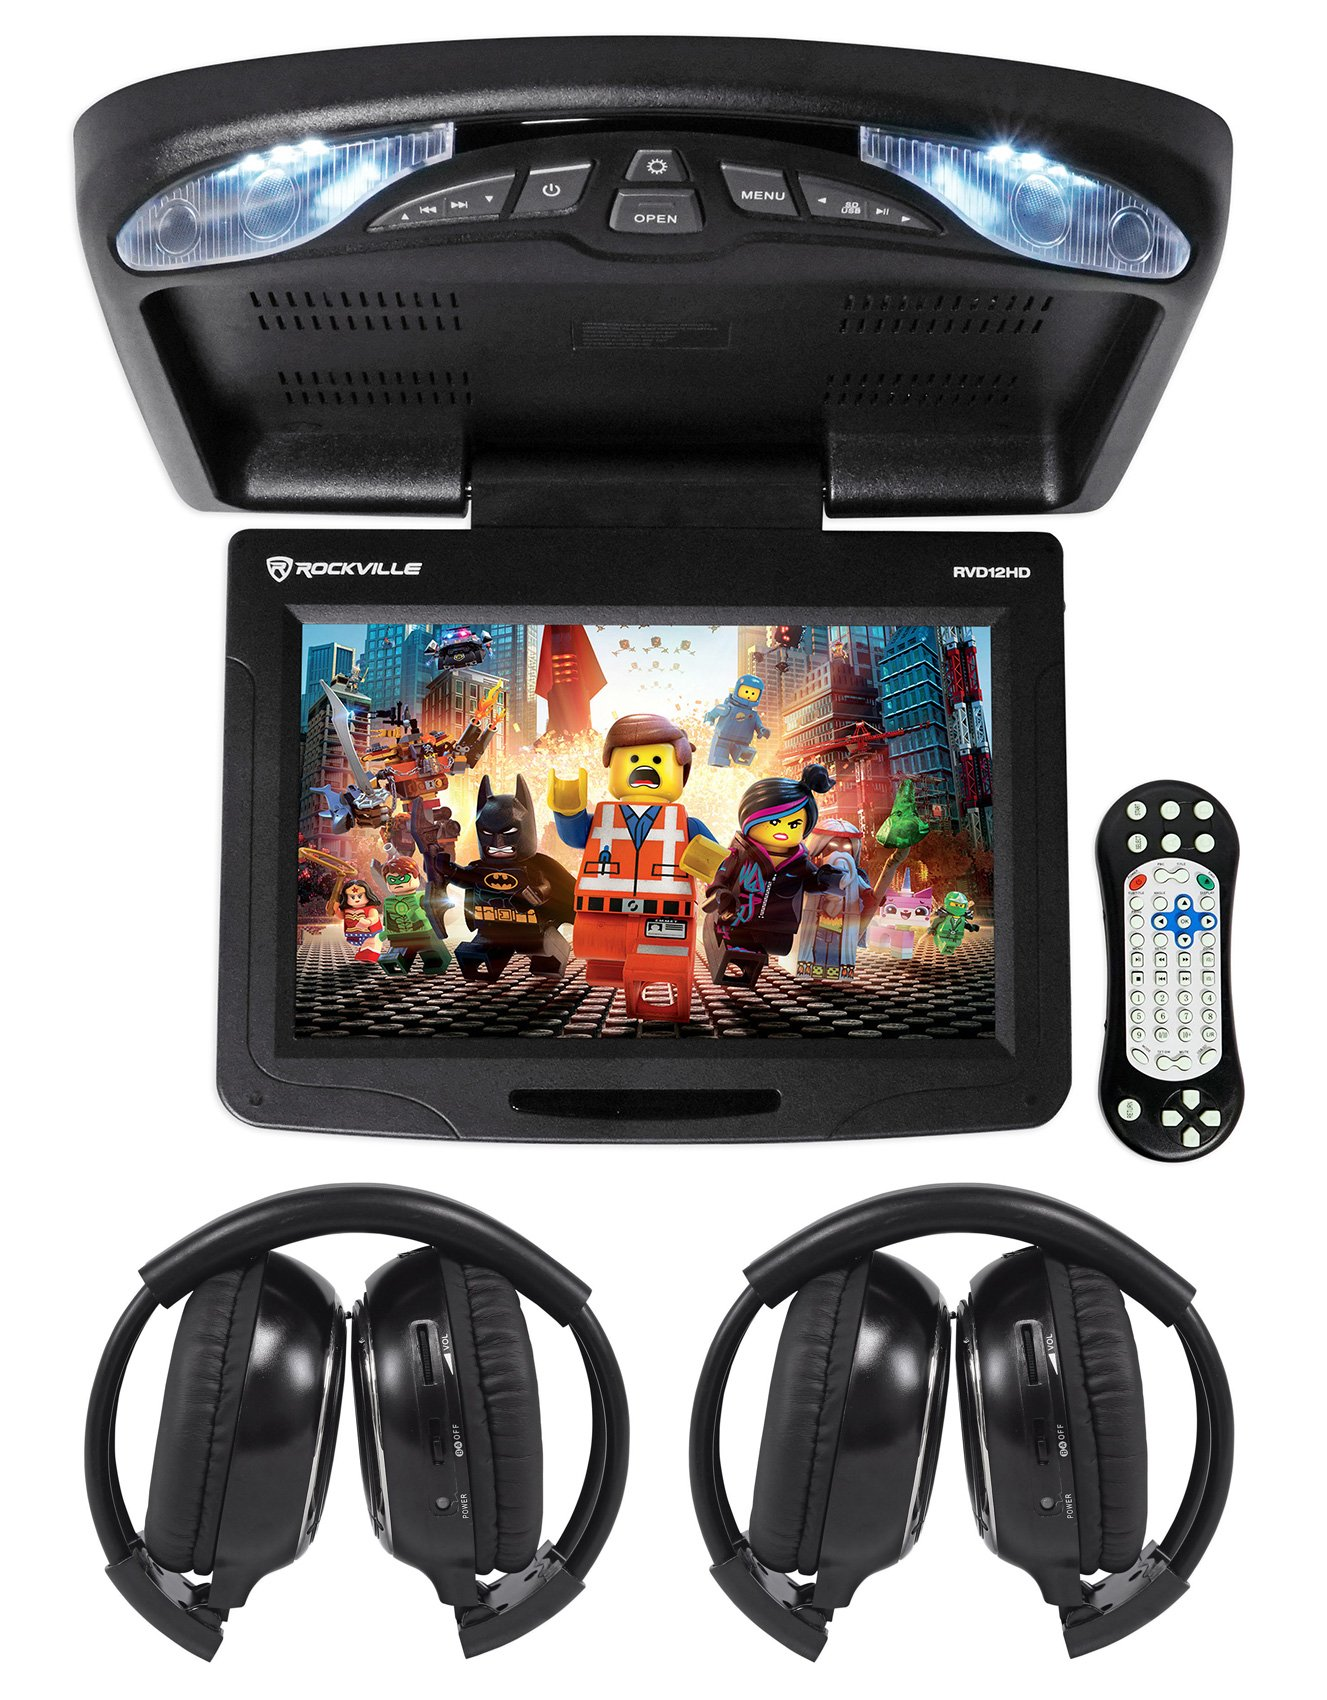 Rockville RVD12HD-BK 12'' Black Flip Down Car Monitor DVD/USB Player+Headphones by Rockville